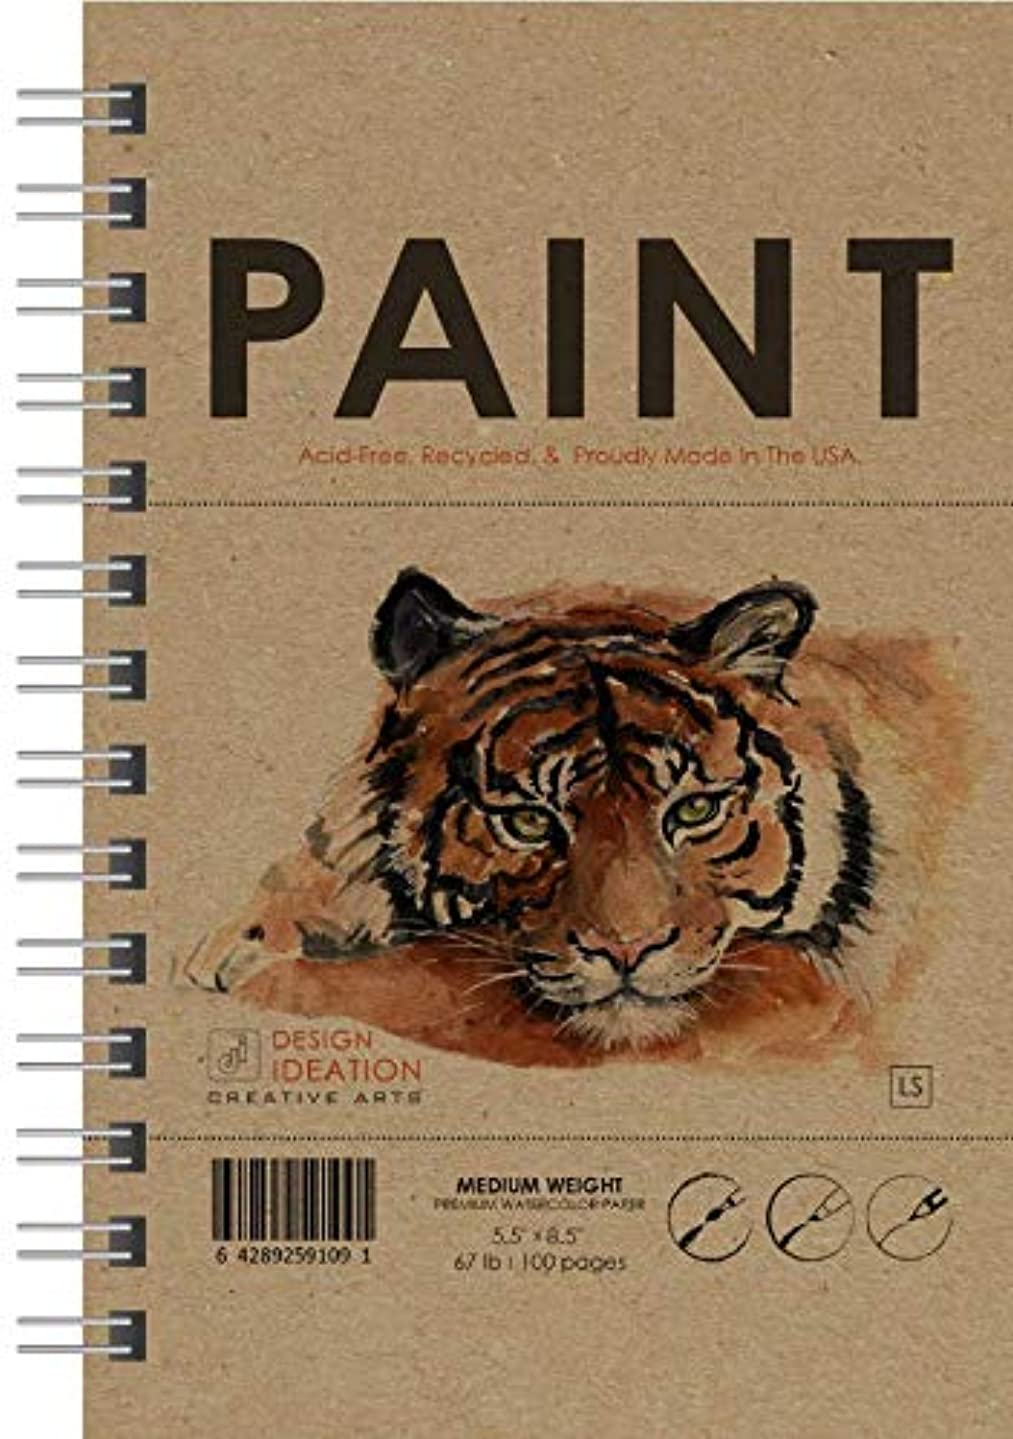 Watercolor: Premium Paper Watercolor Book for Pencil, Ink, Marker, Charcoal and Watercolor Paints. Great for Art, Design and Education. Made in The USA. (Classic 5.5